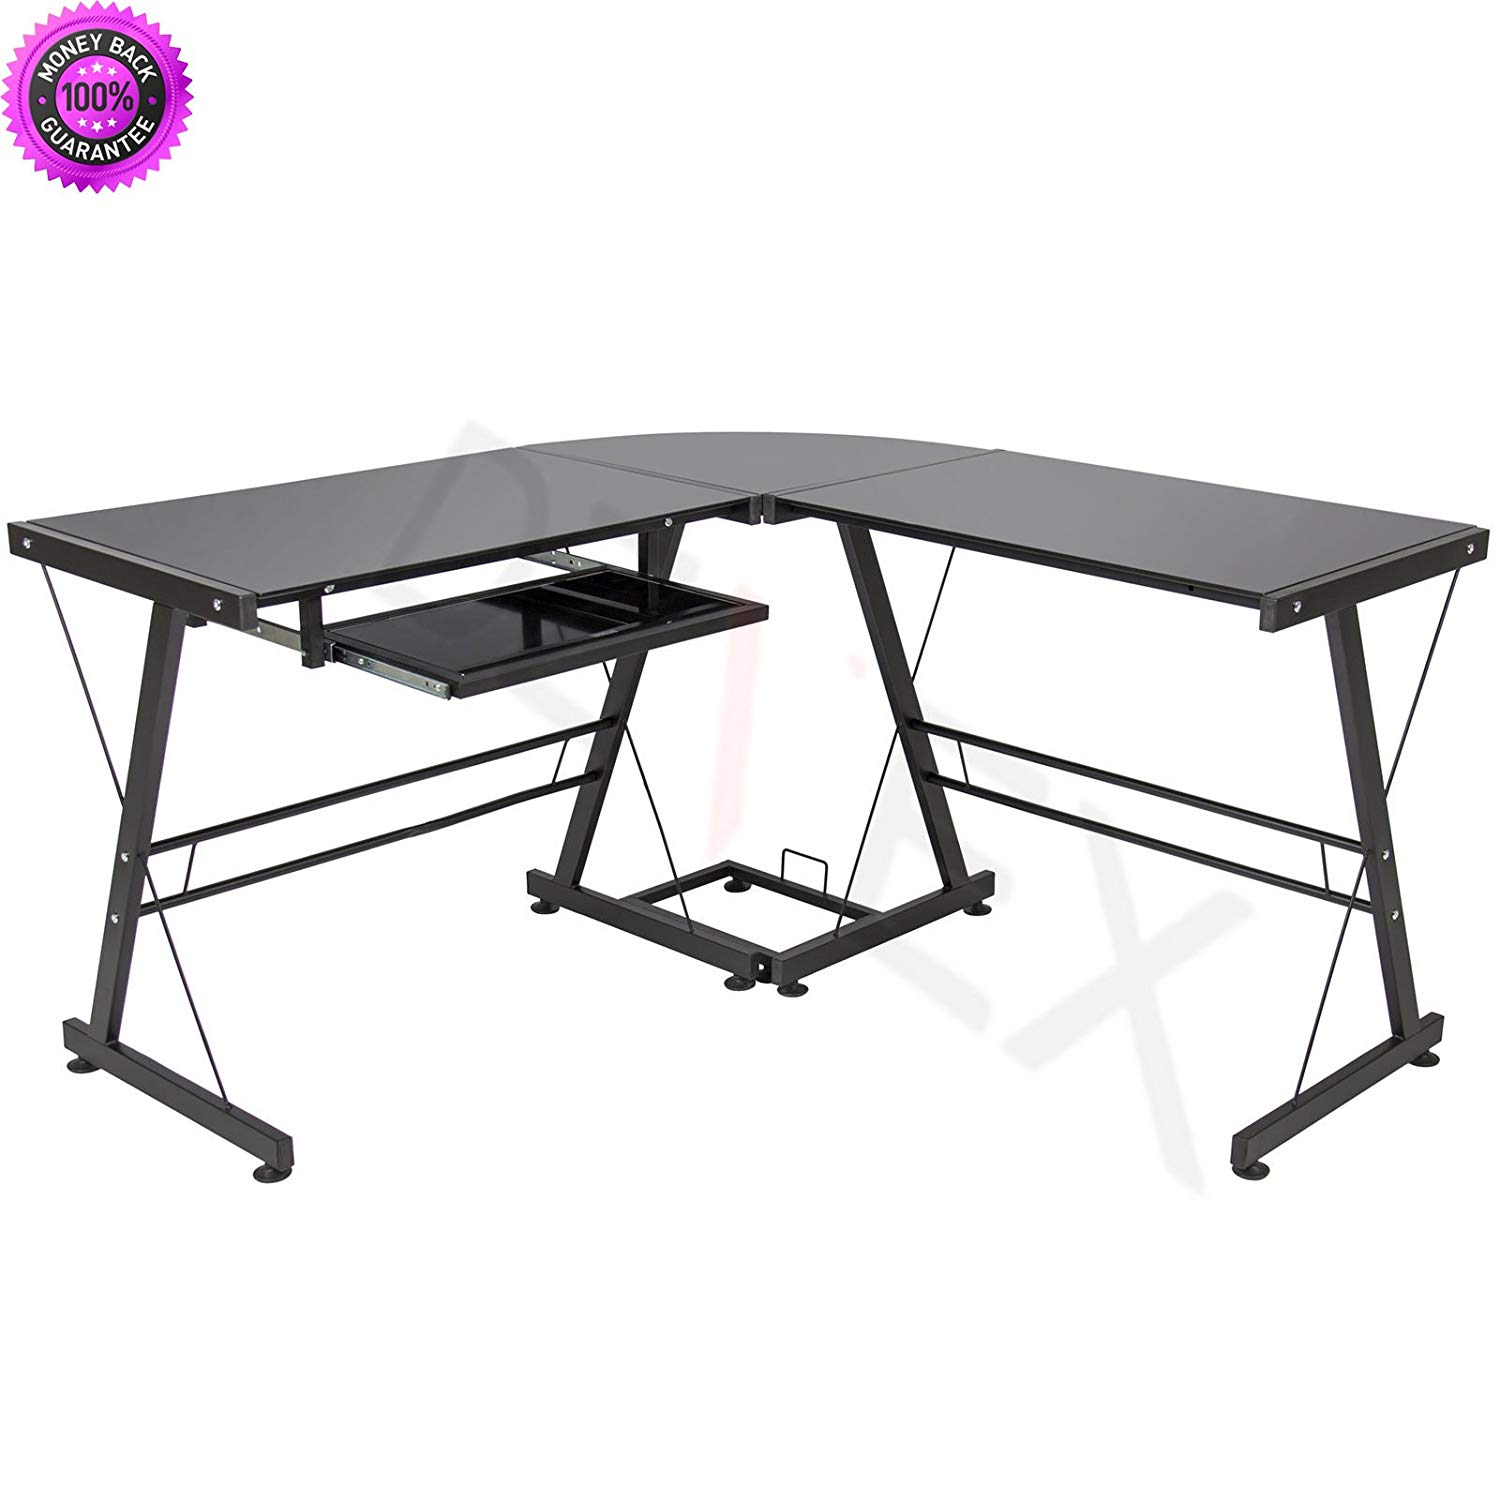 DzVeX_ L-Shape Computer Desk PC Glass Table Workstation Corner Home Office - Black And home office desk home office furniture collections modular home office furniture office furniture office